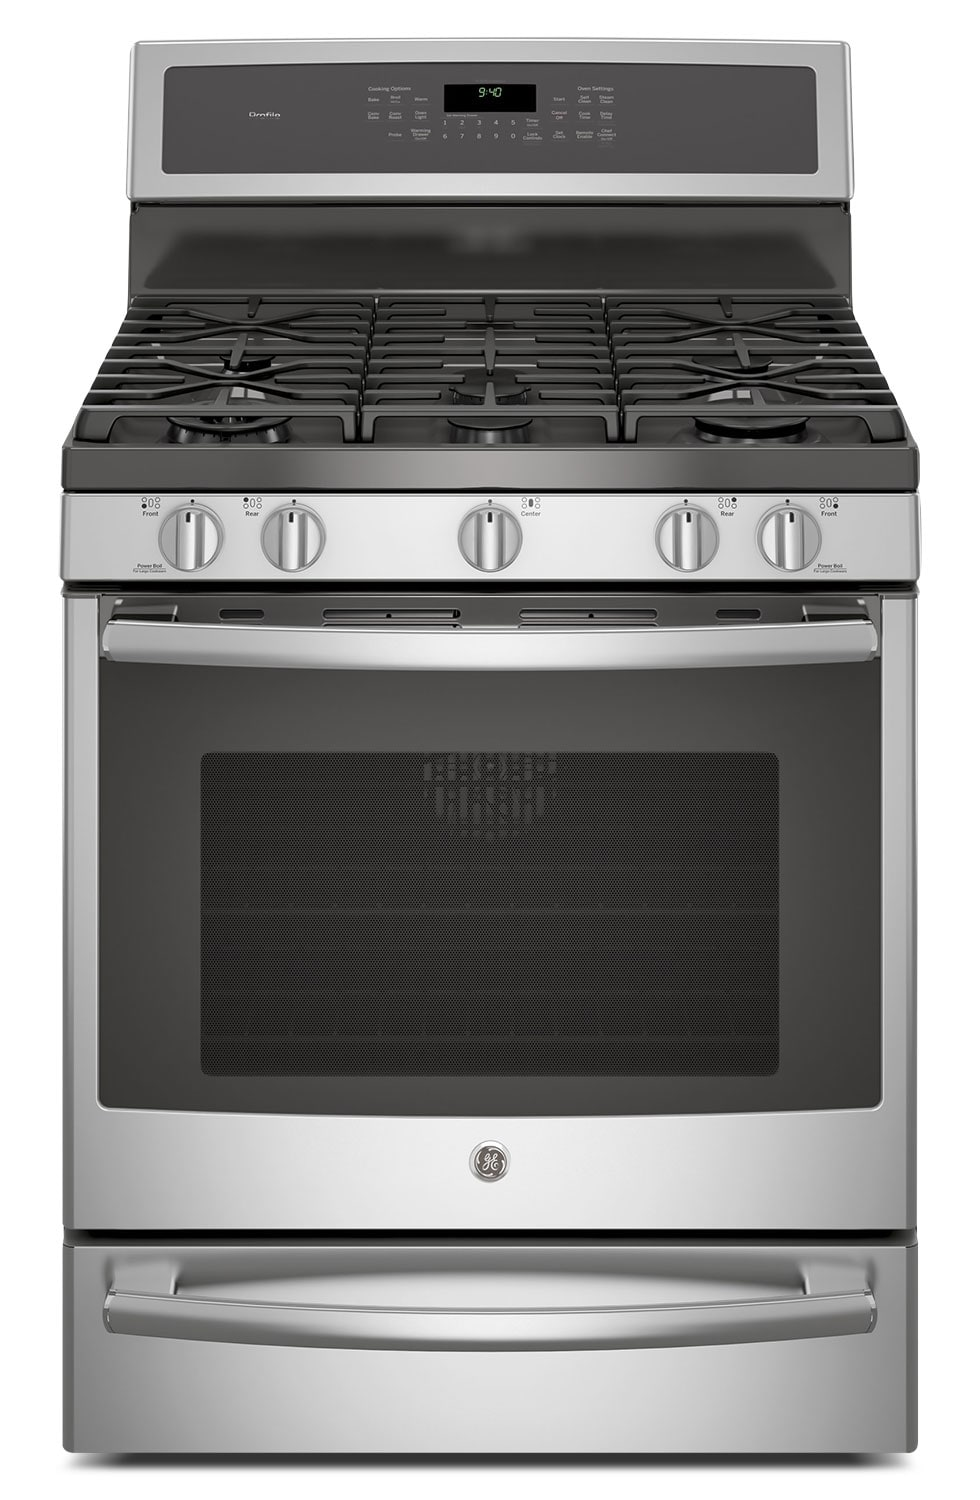 Cooking Products - GE 5.6 Cu. Ft. Freestanding Gas Range – PCGB940SEJSS